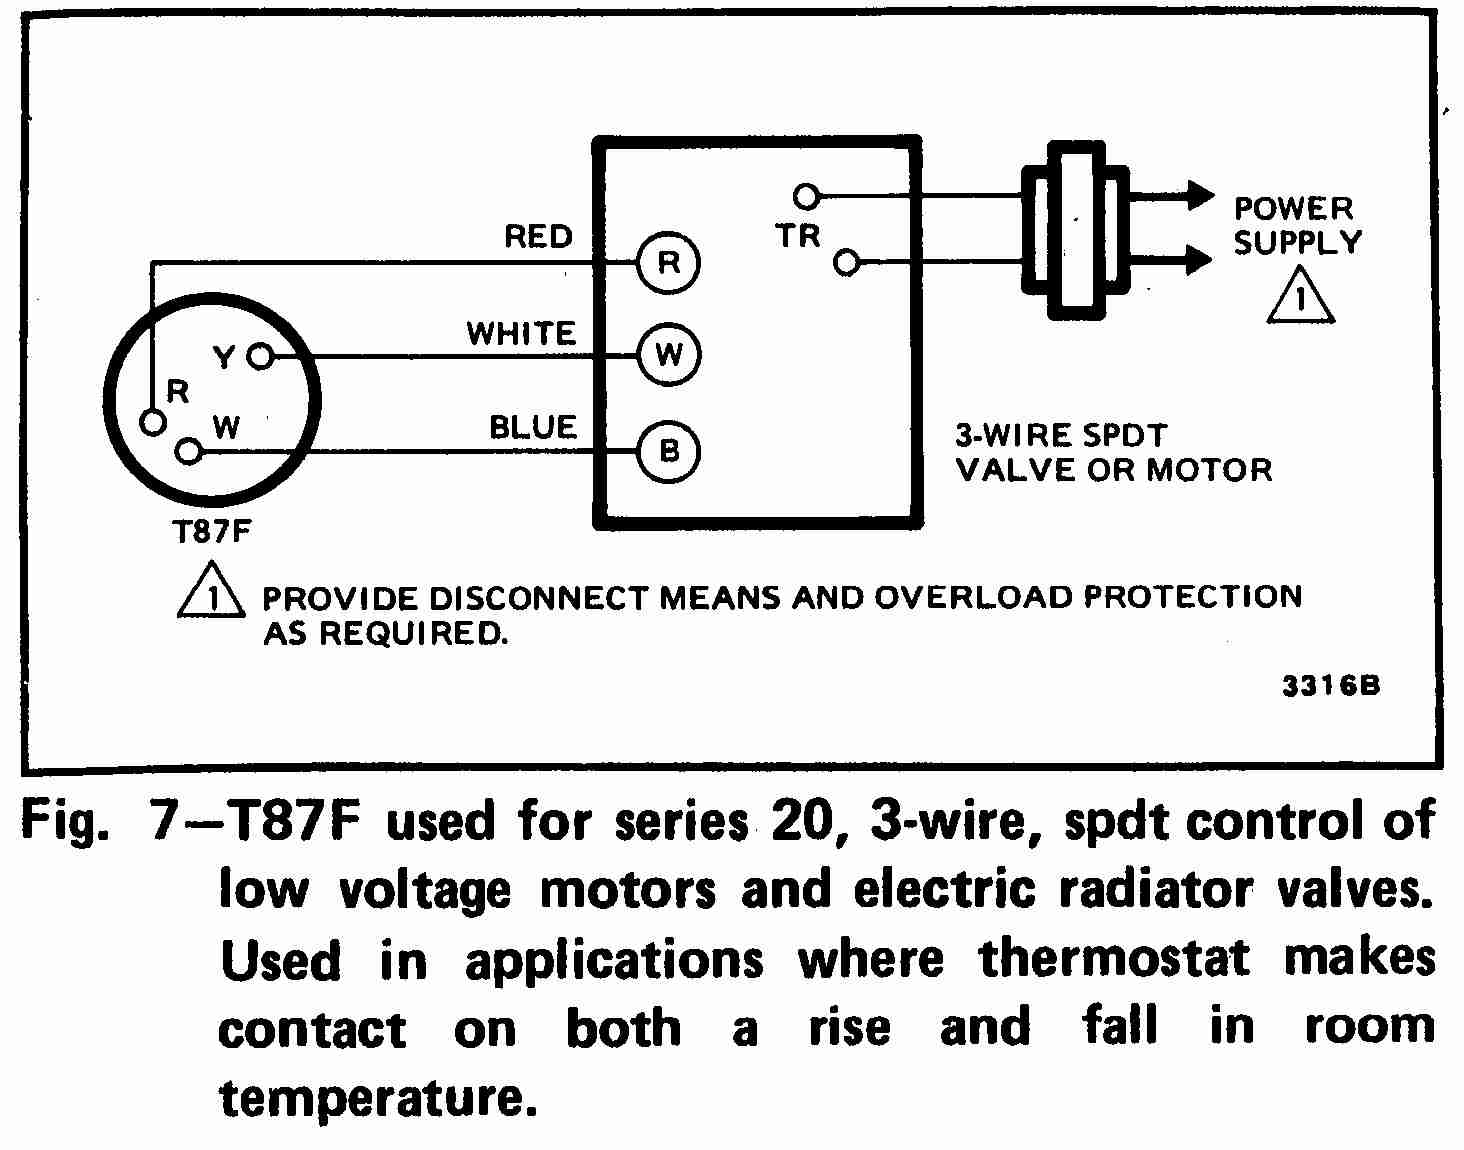 TT_T87F_0002_3W2_DJF room thermostat wiring diagrams for hvac systems fcu wiring diagram at fashall.co